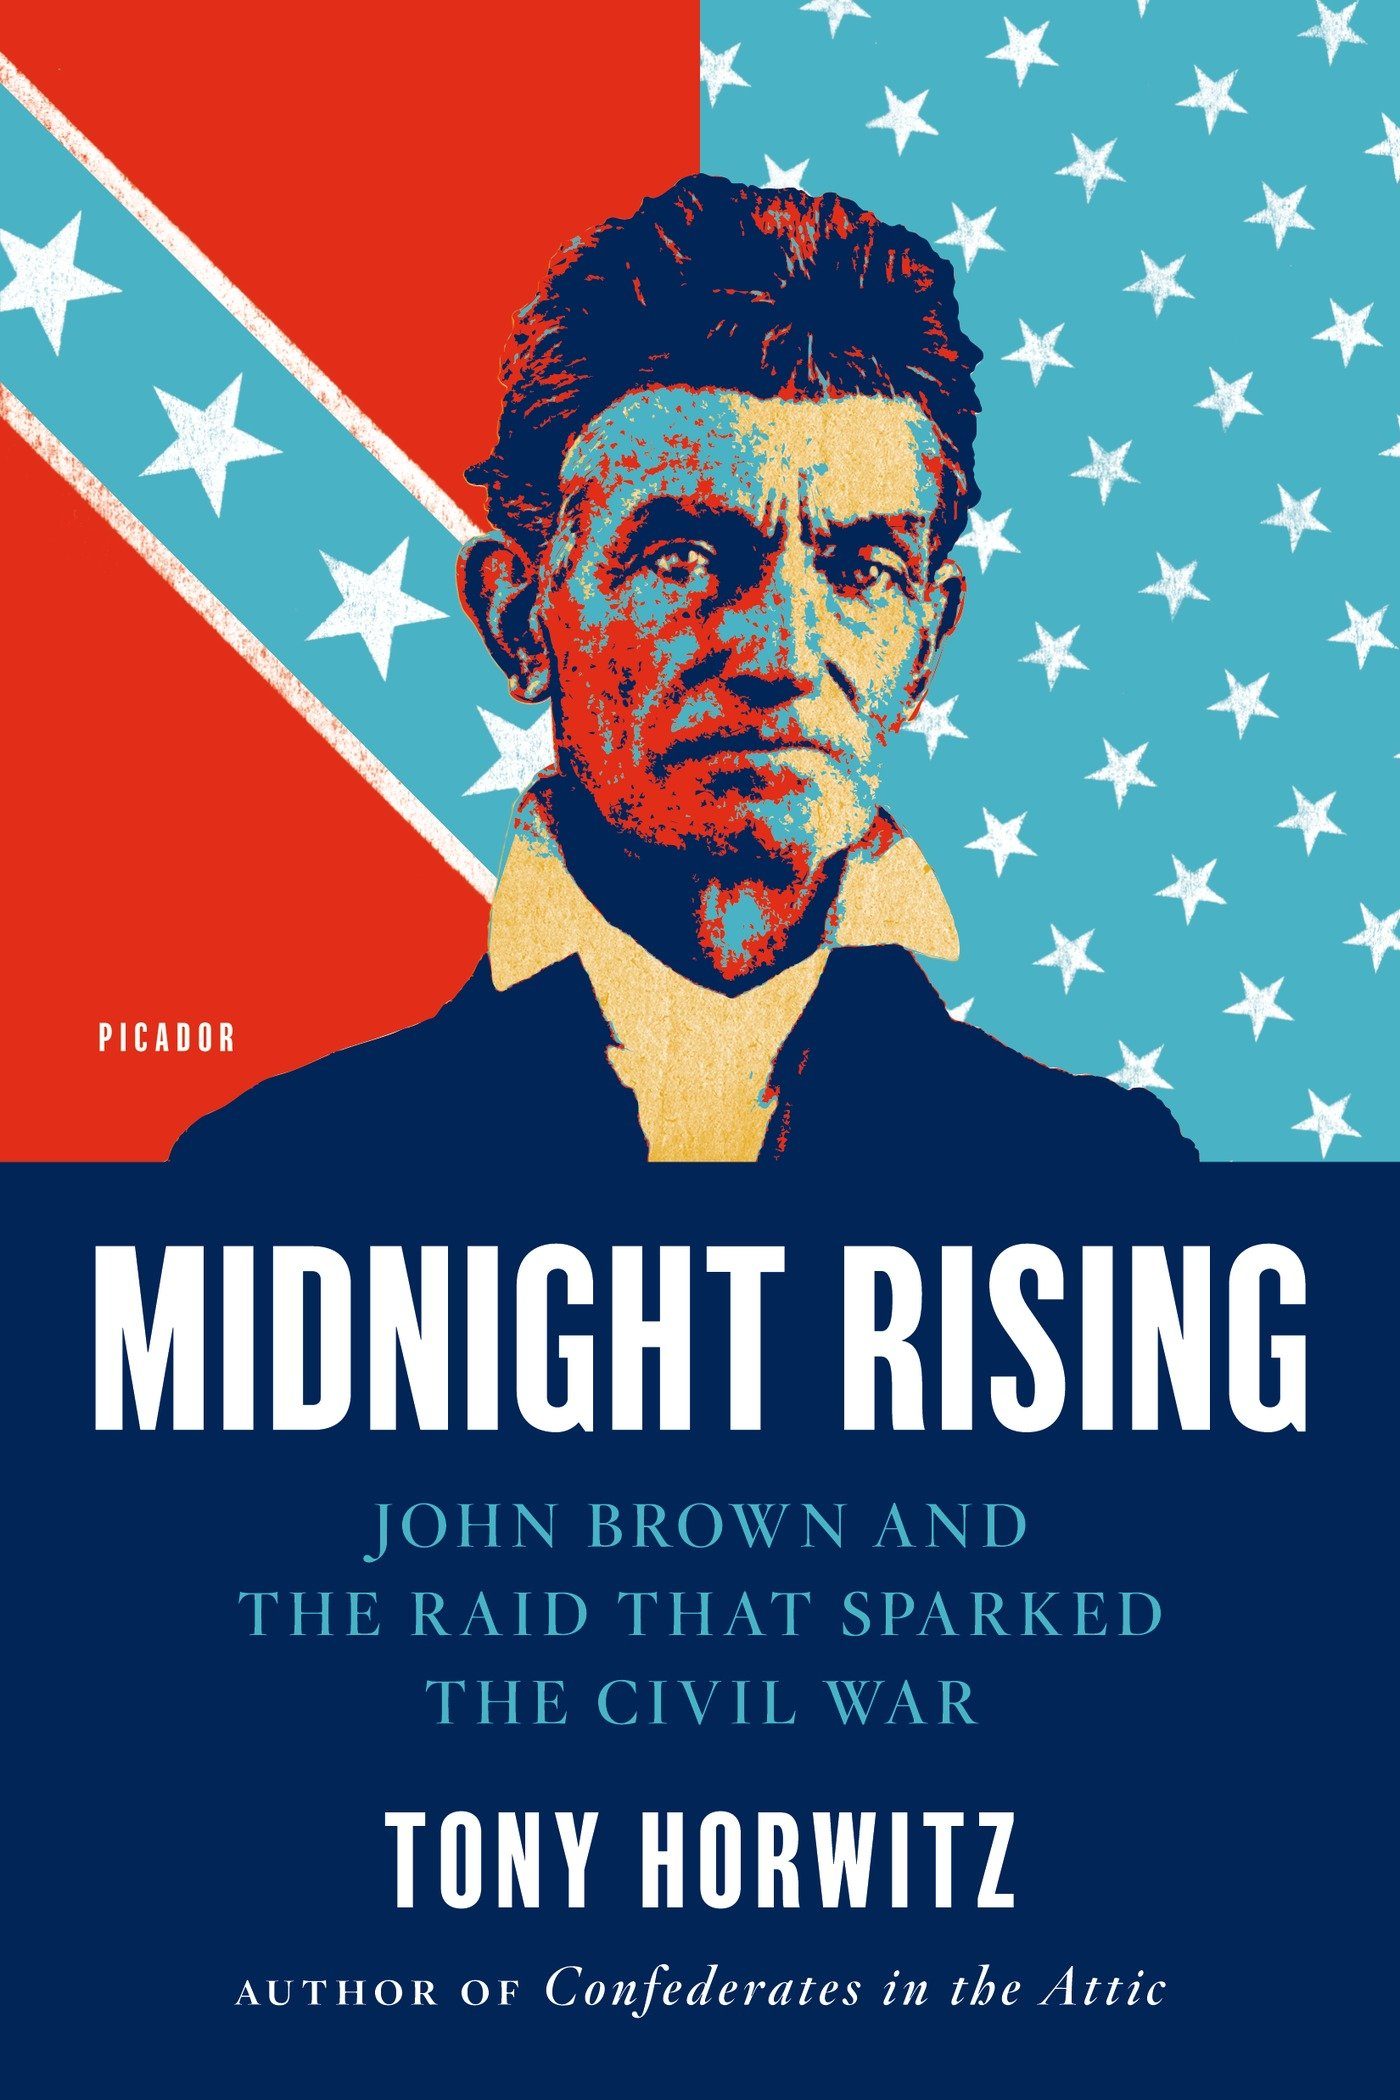 John brown the spark that ignited the american civil war